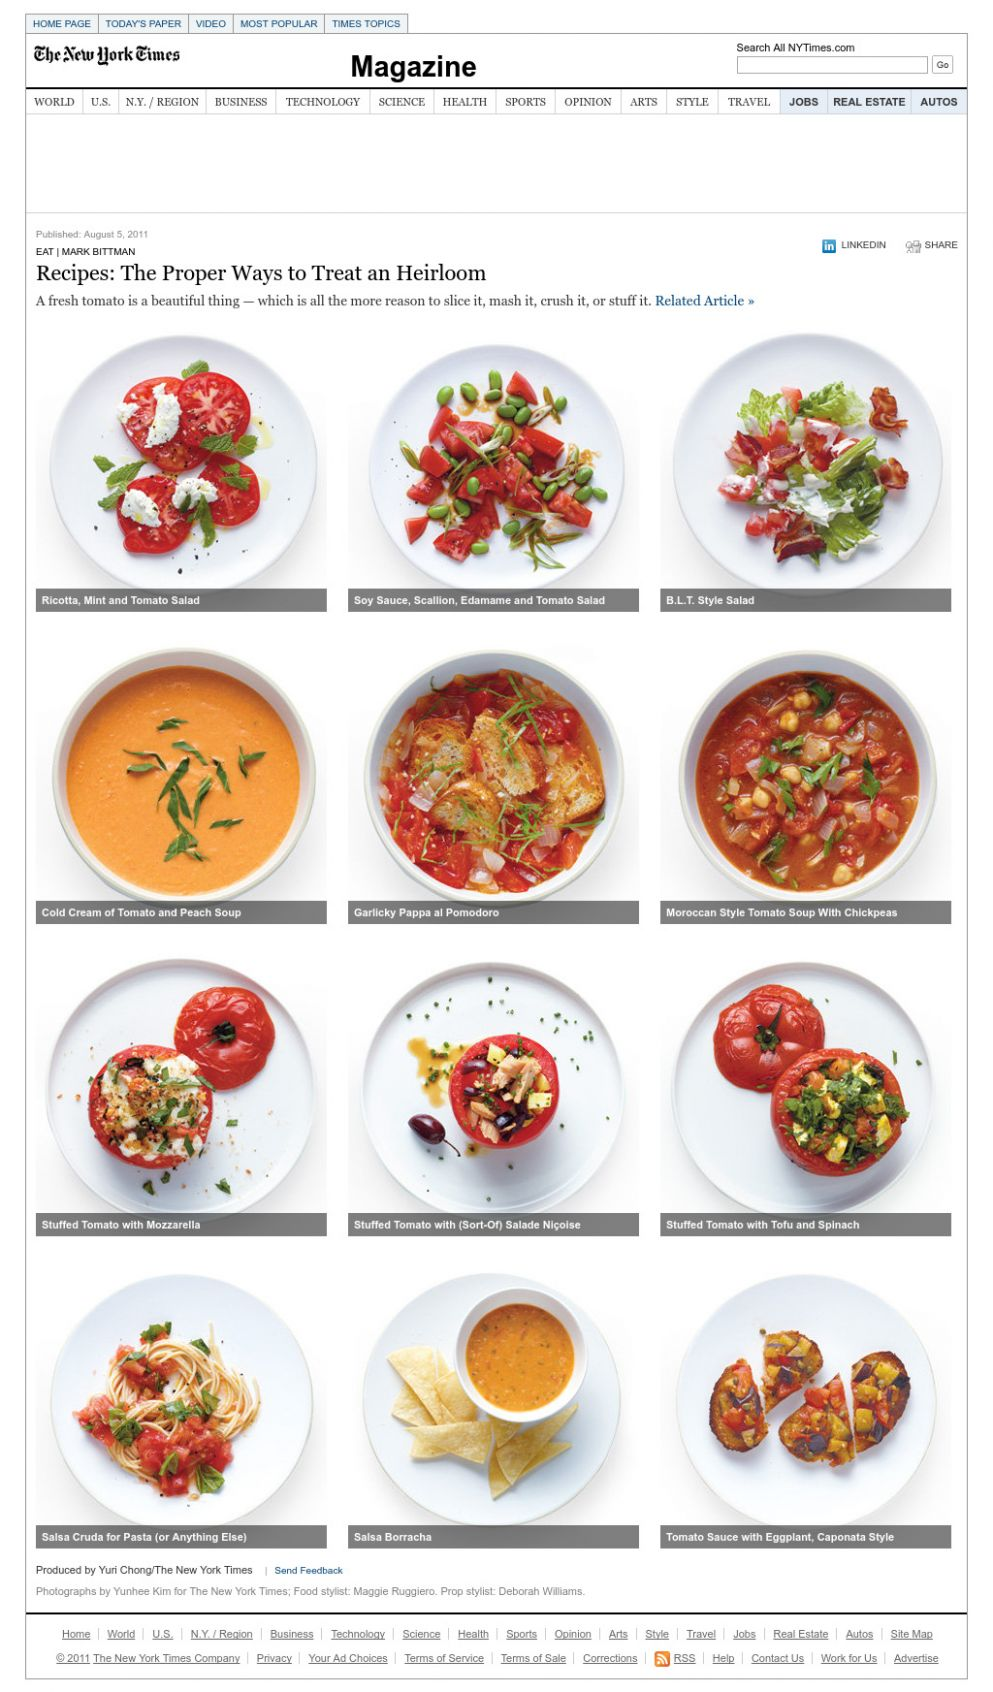 Mark Bittman - Recipes: Summer Tomatoes - Interactive Feature ...